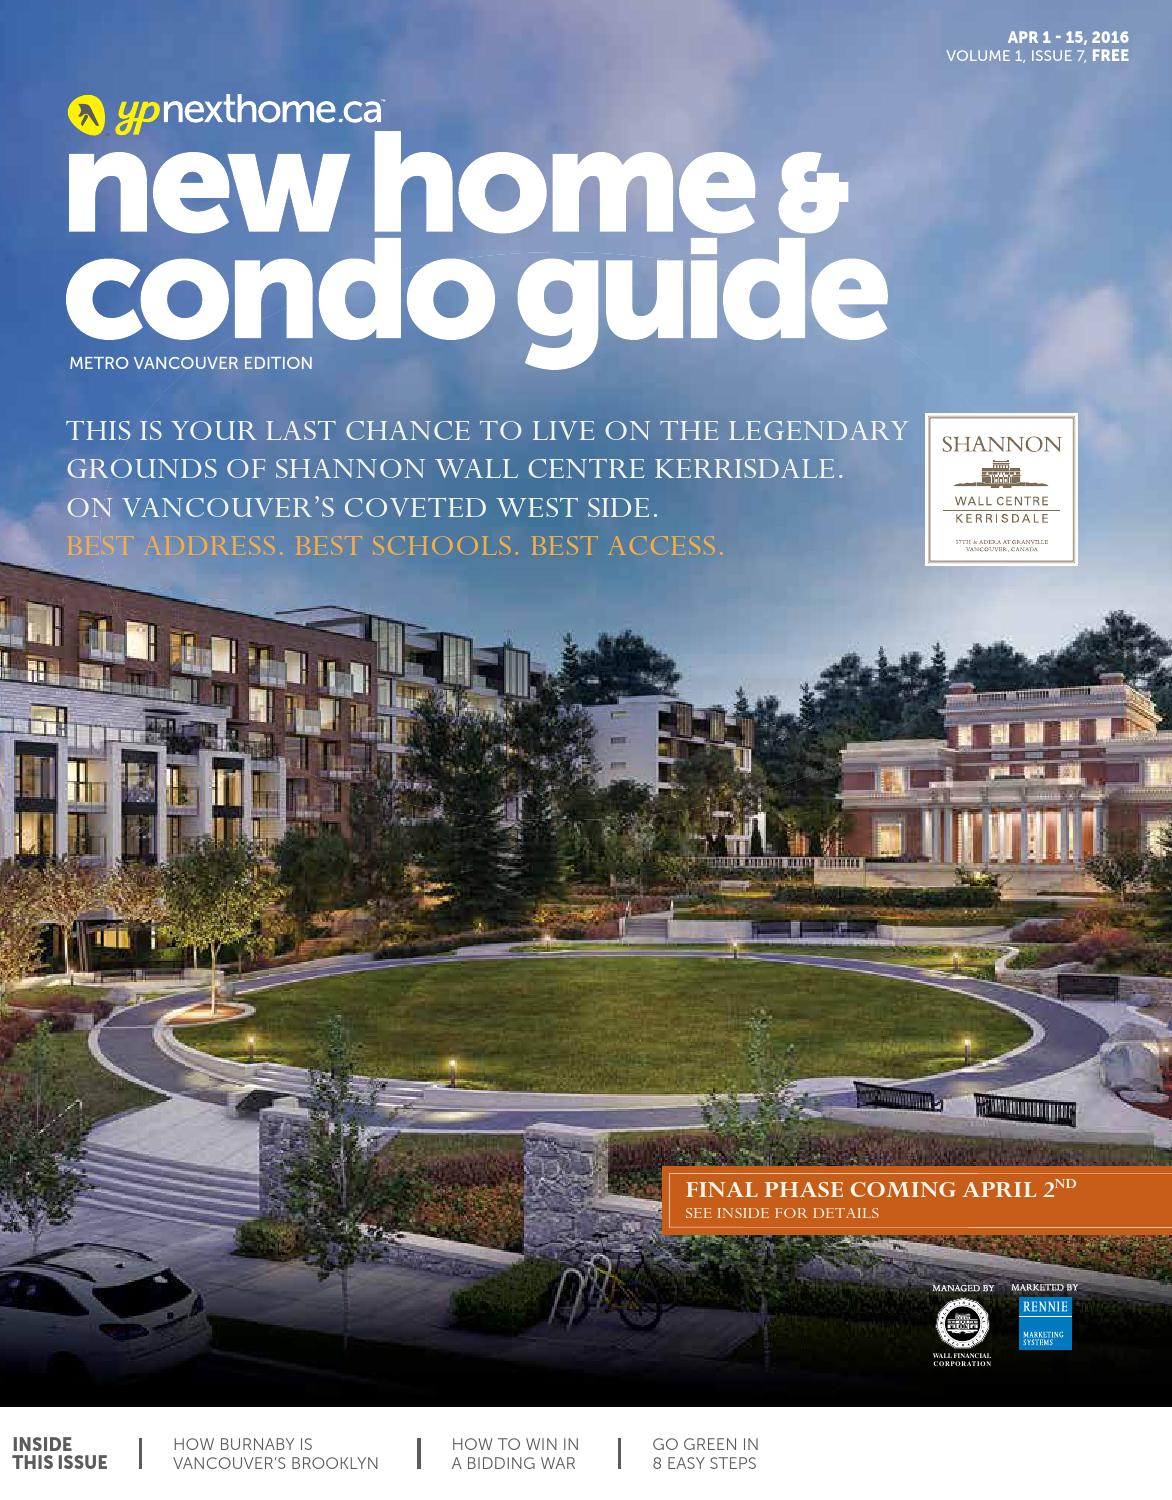 BC New Home and Condo Guide - Apr 1, 2016 by NextHome - issuu